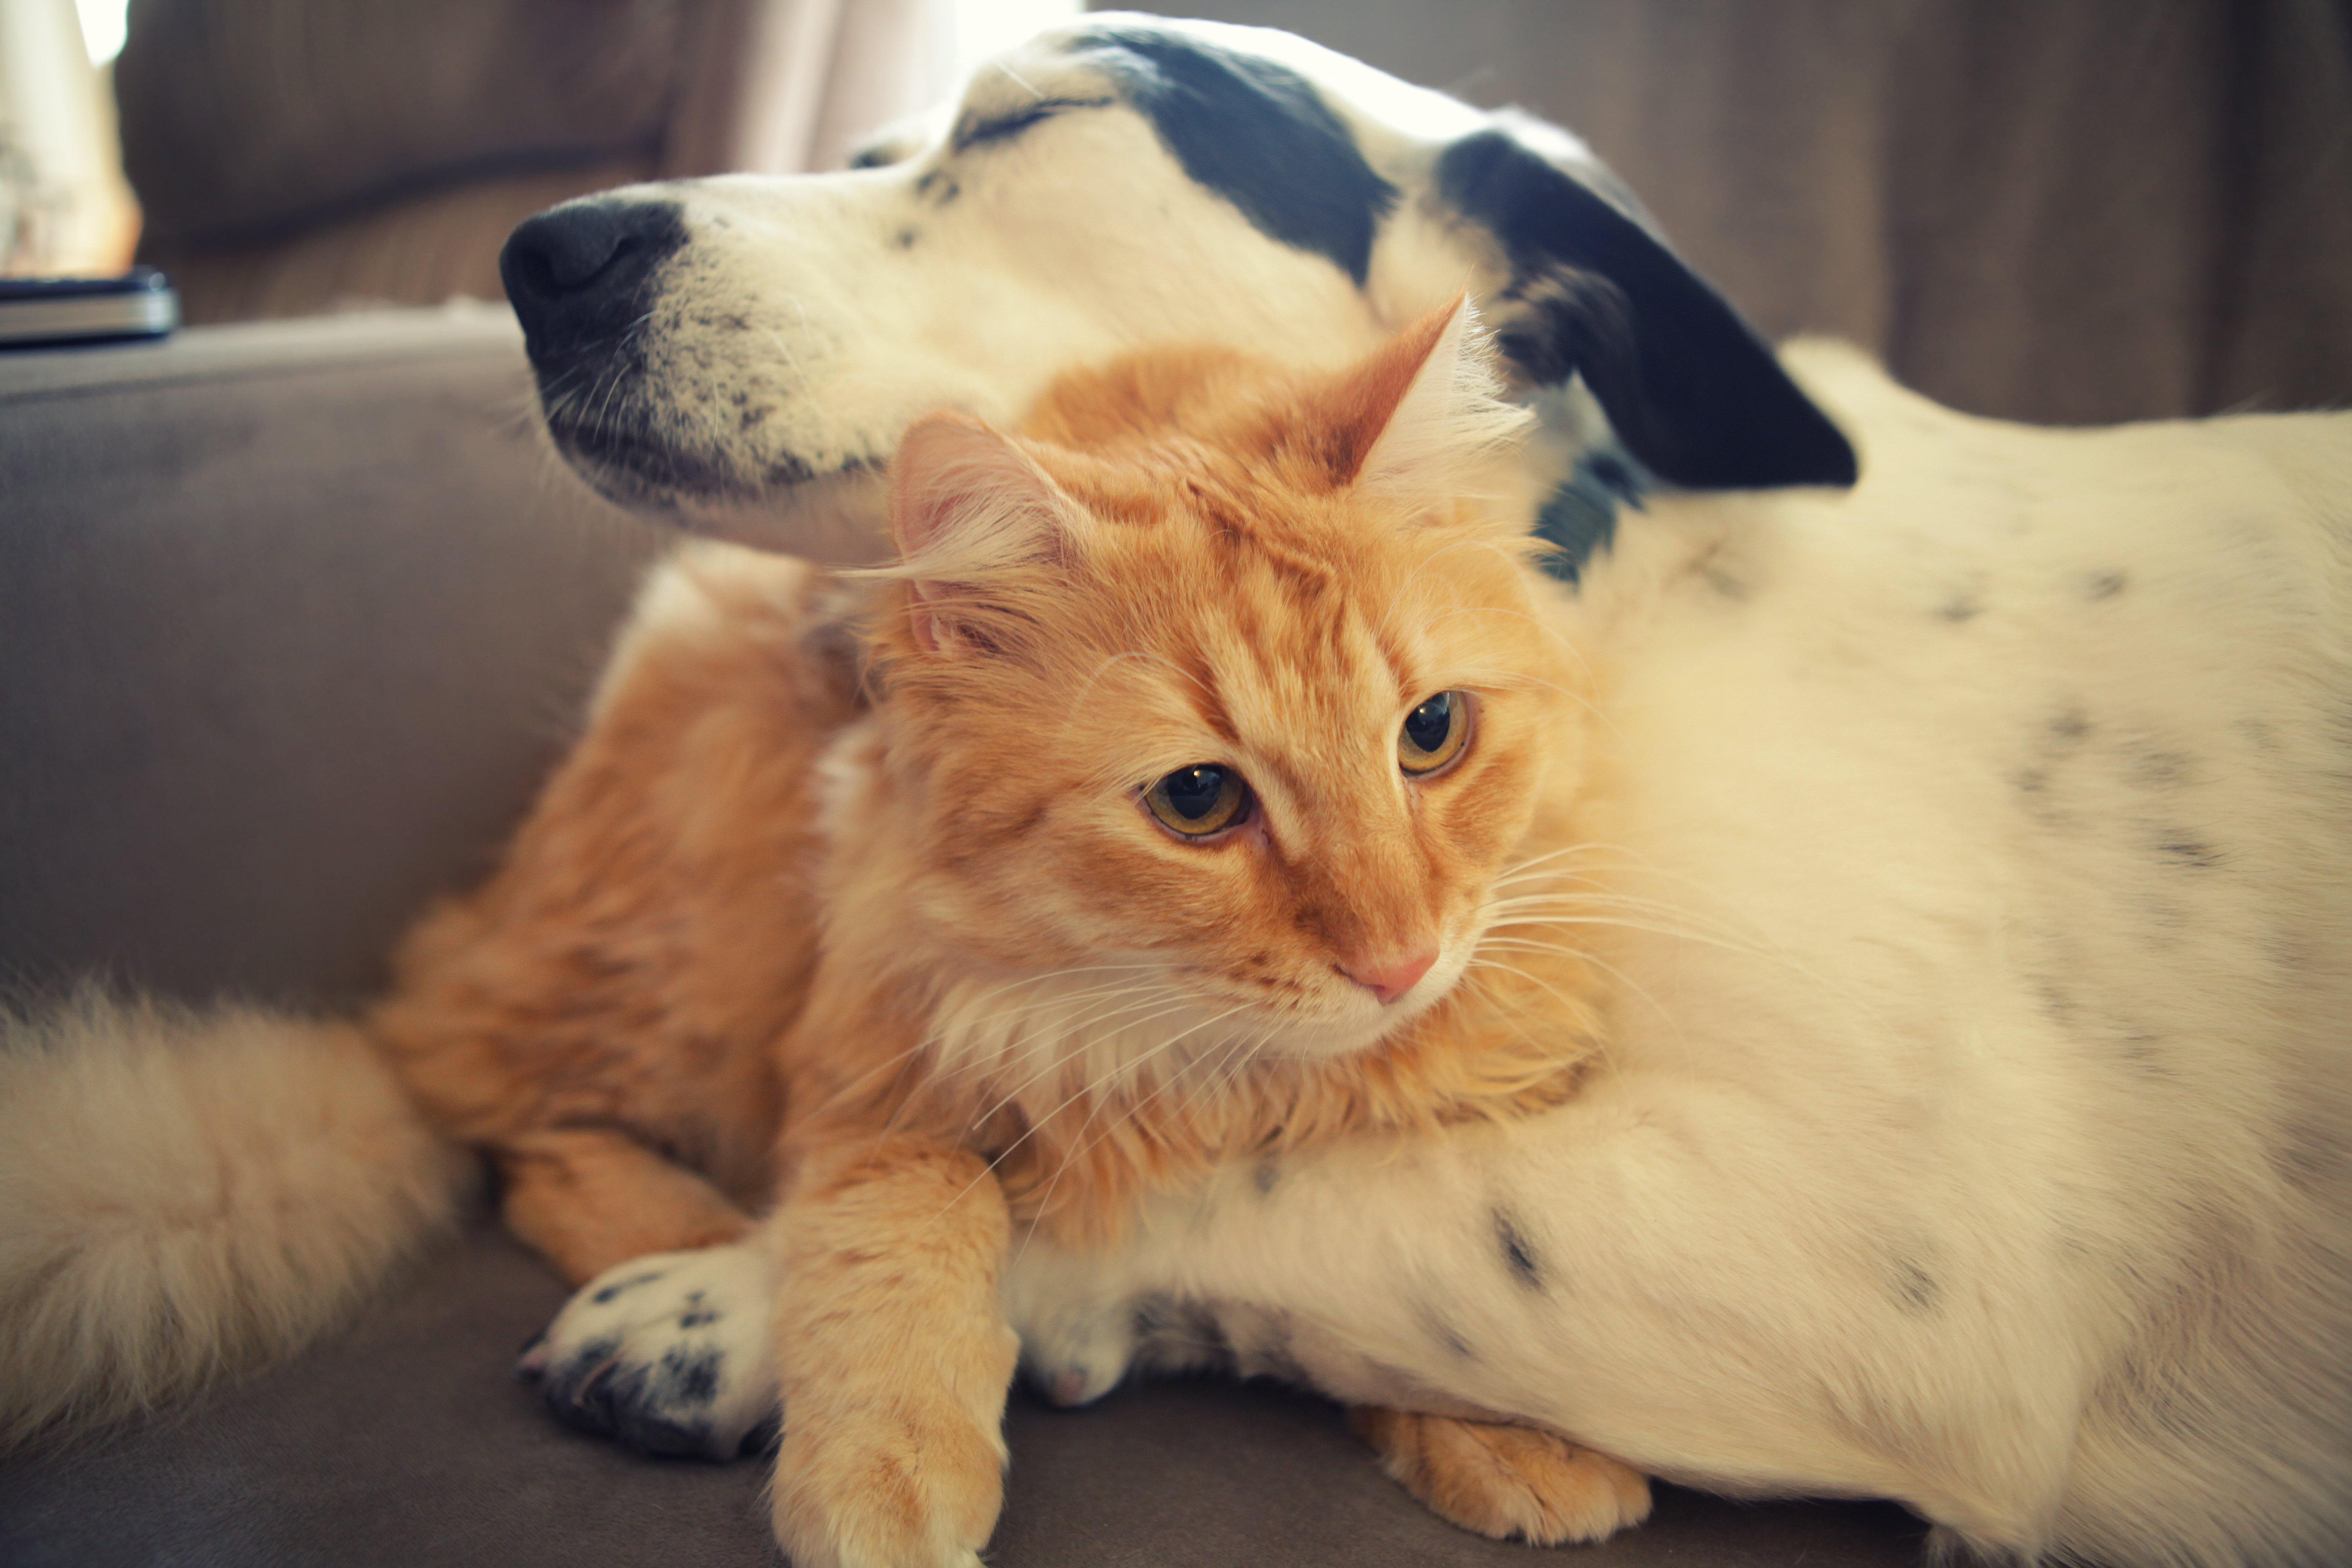 Watch the best dog and cat videos online and submit your own! Laugh cry and coo over these adorable pet videos from DogWorkcom